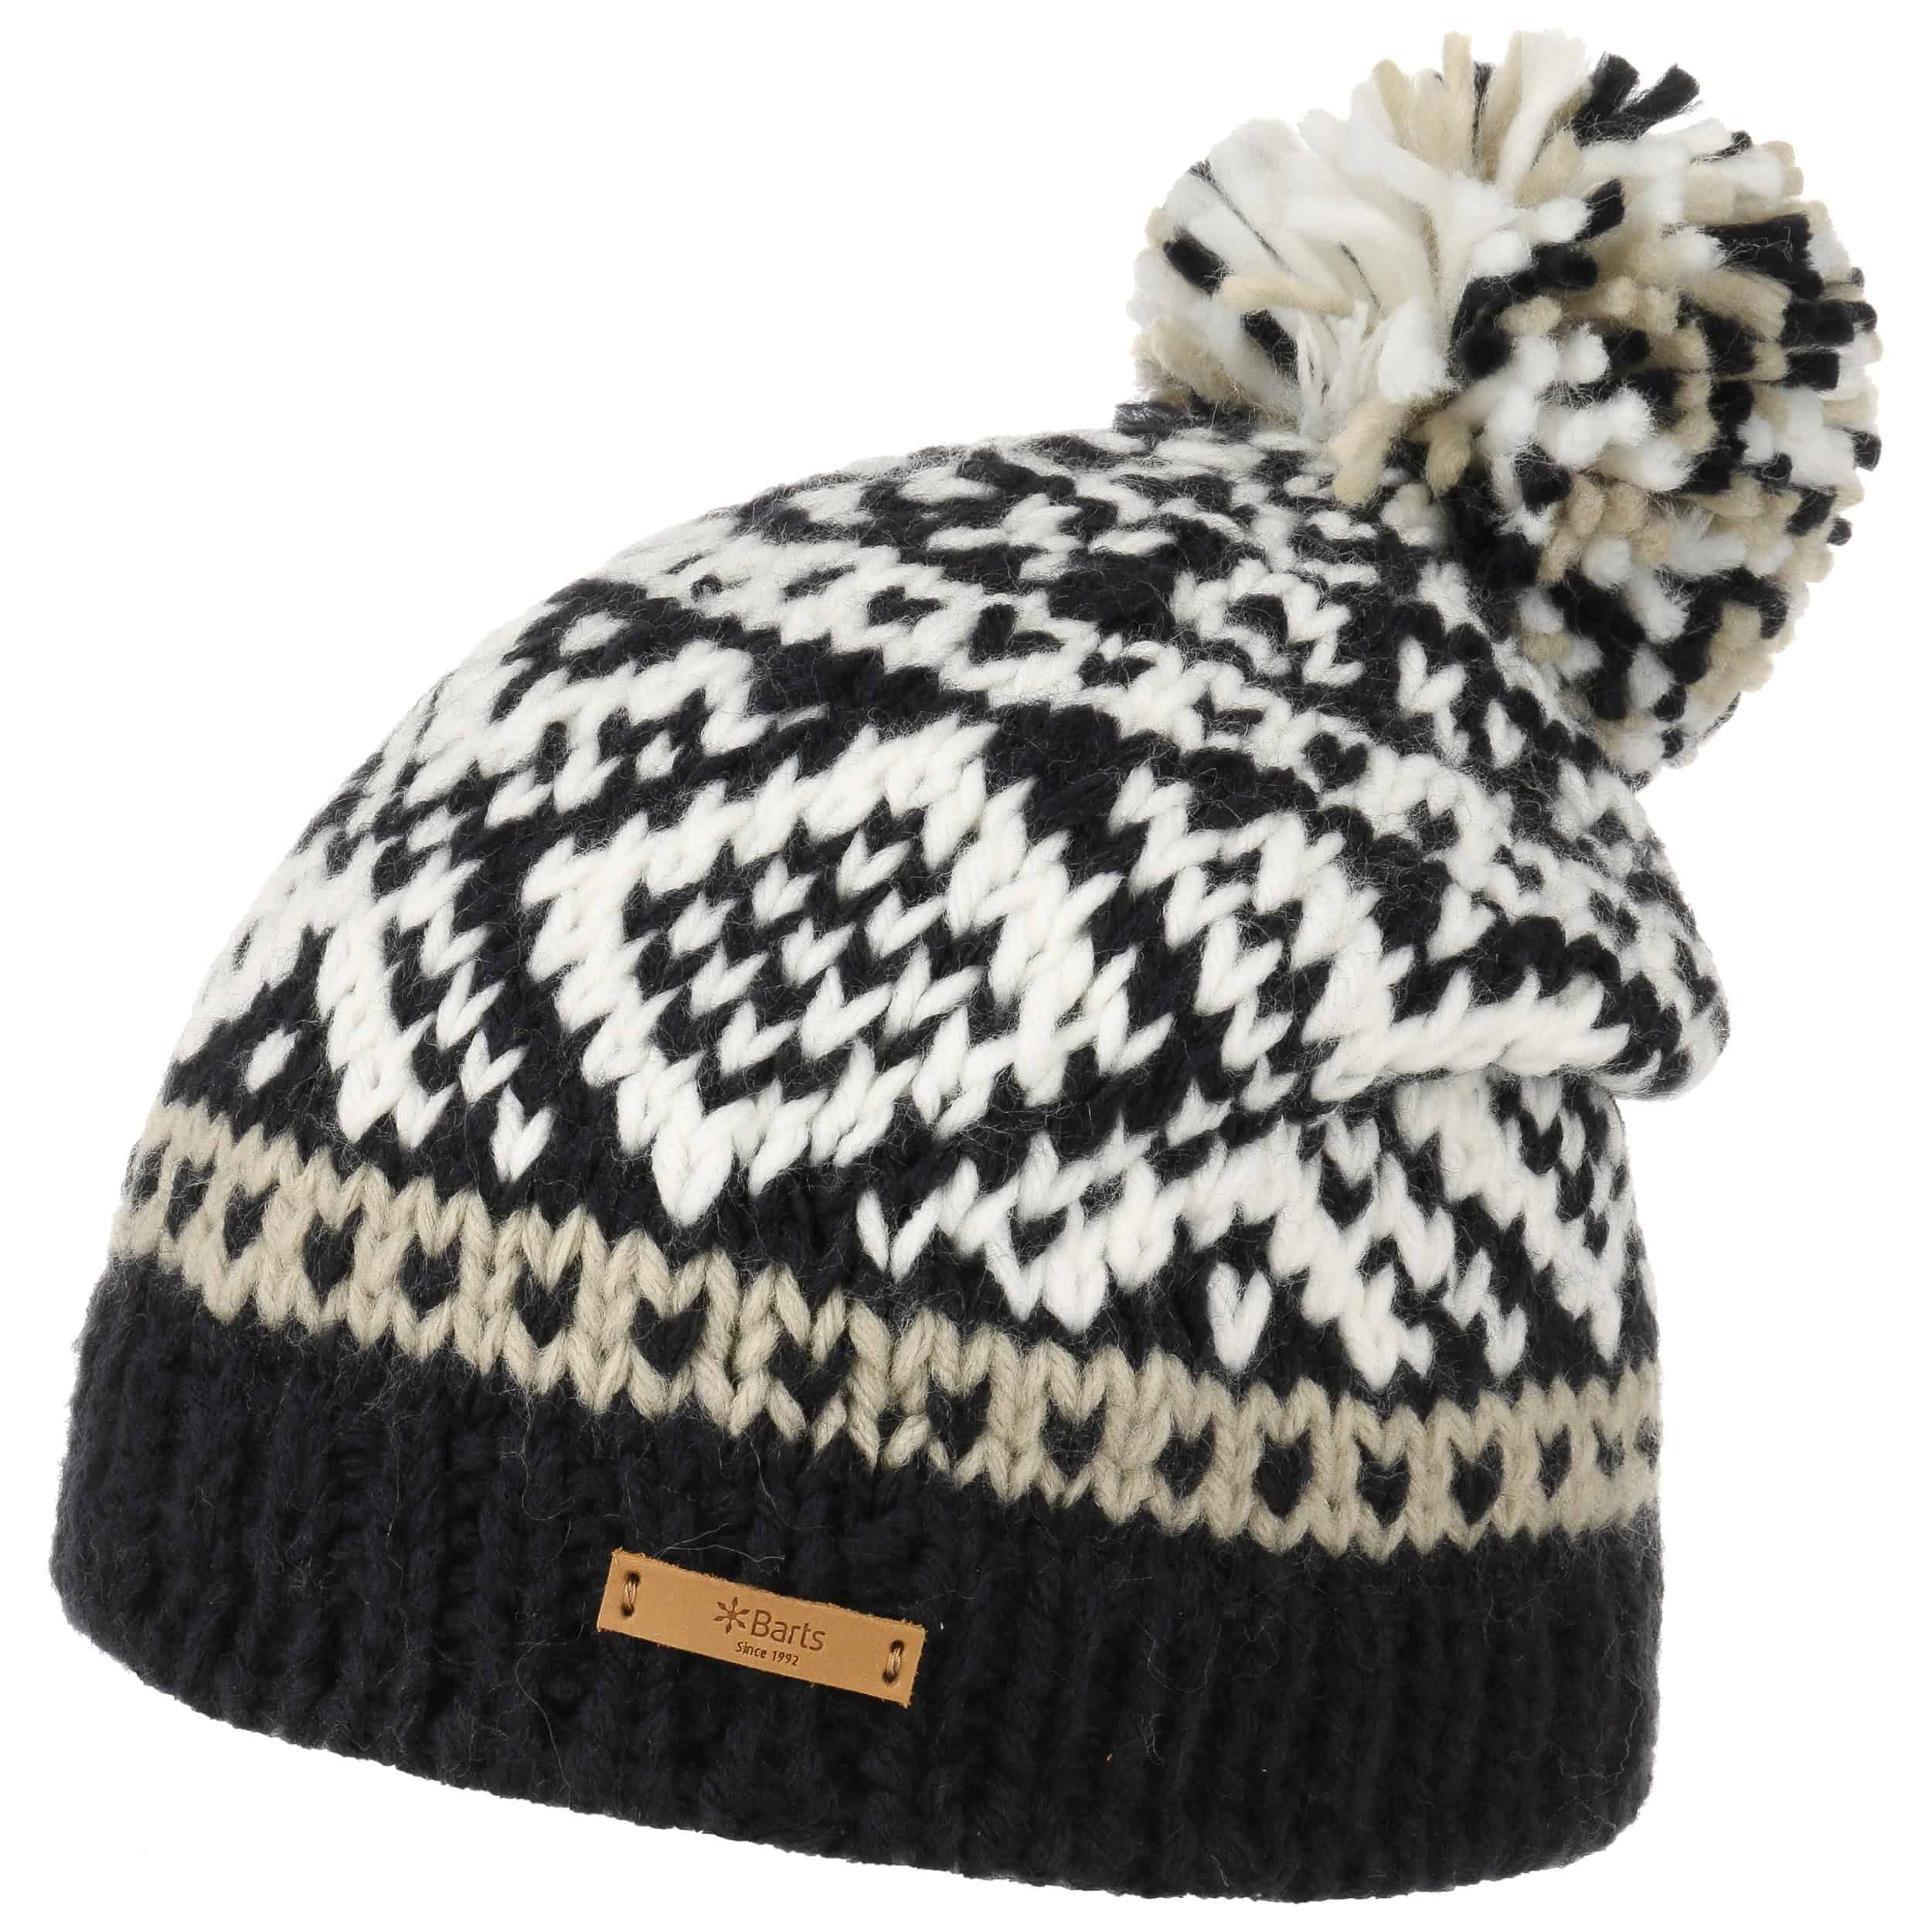 979a424f7c0 Log Cabin Pompom Hat. by Barts